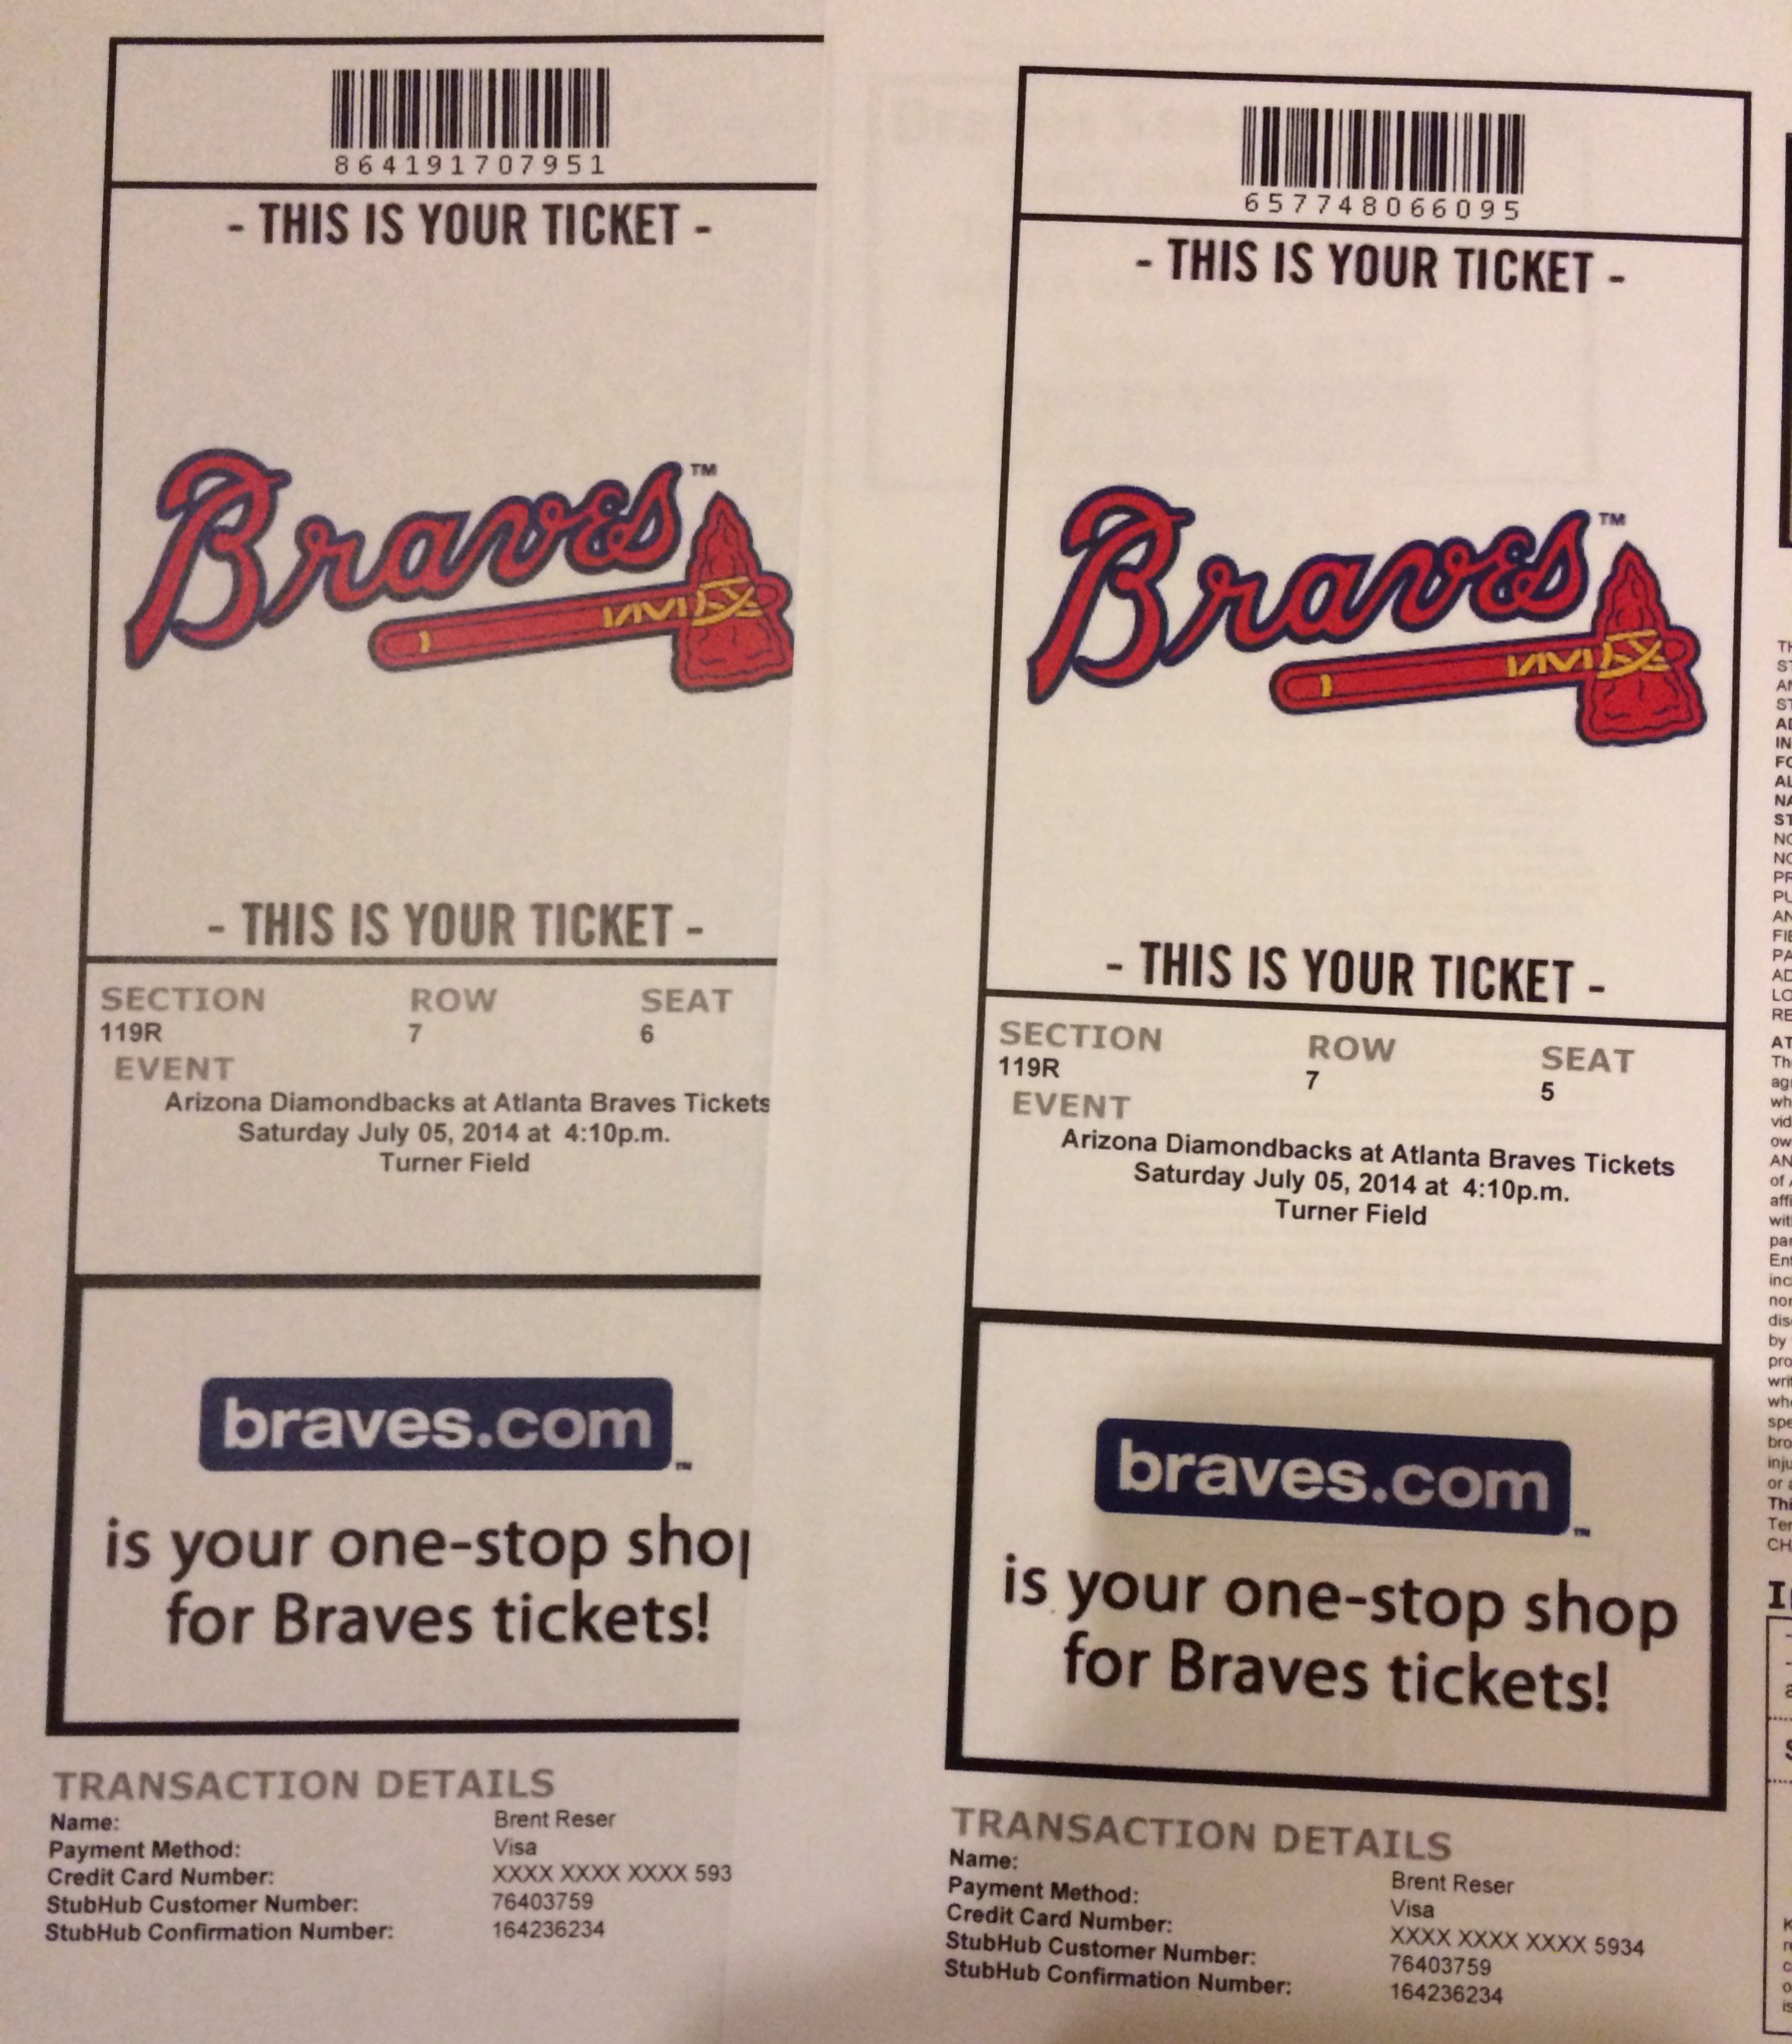 Sidney and I will be attending today's Atlanta Braves game.